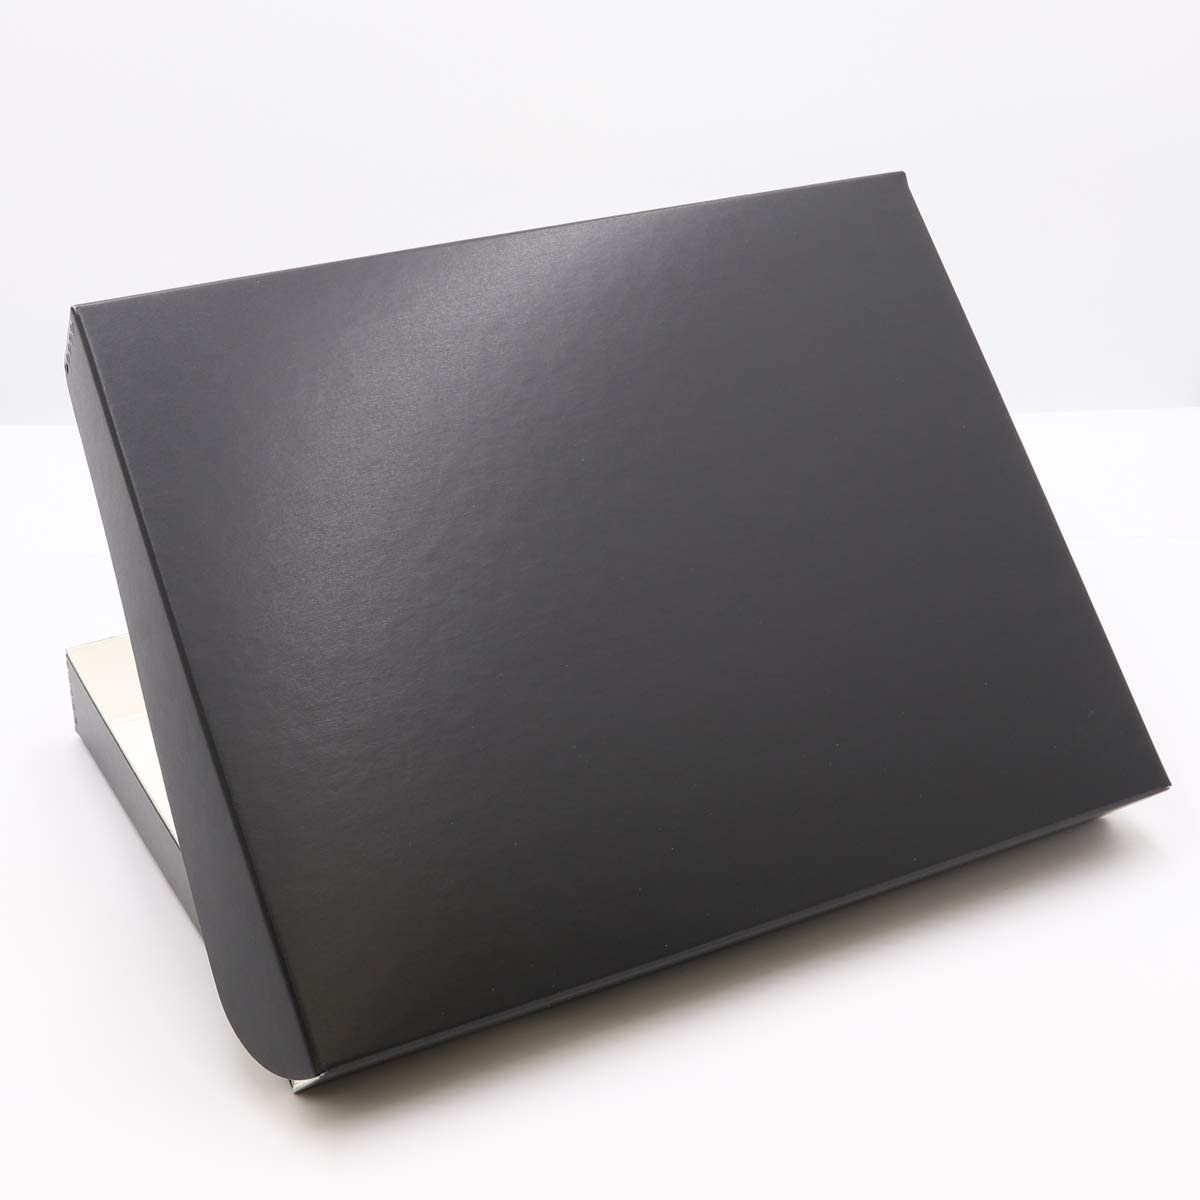 Crafts Magazines Protect Longevity DIY. Cards Archival Acid Free Lineco Tan Faux Leather 9x12 Clamshell Box 9.5 x 12.5 x 1.75 Documents Store Photos Prints Wedding Dresses